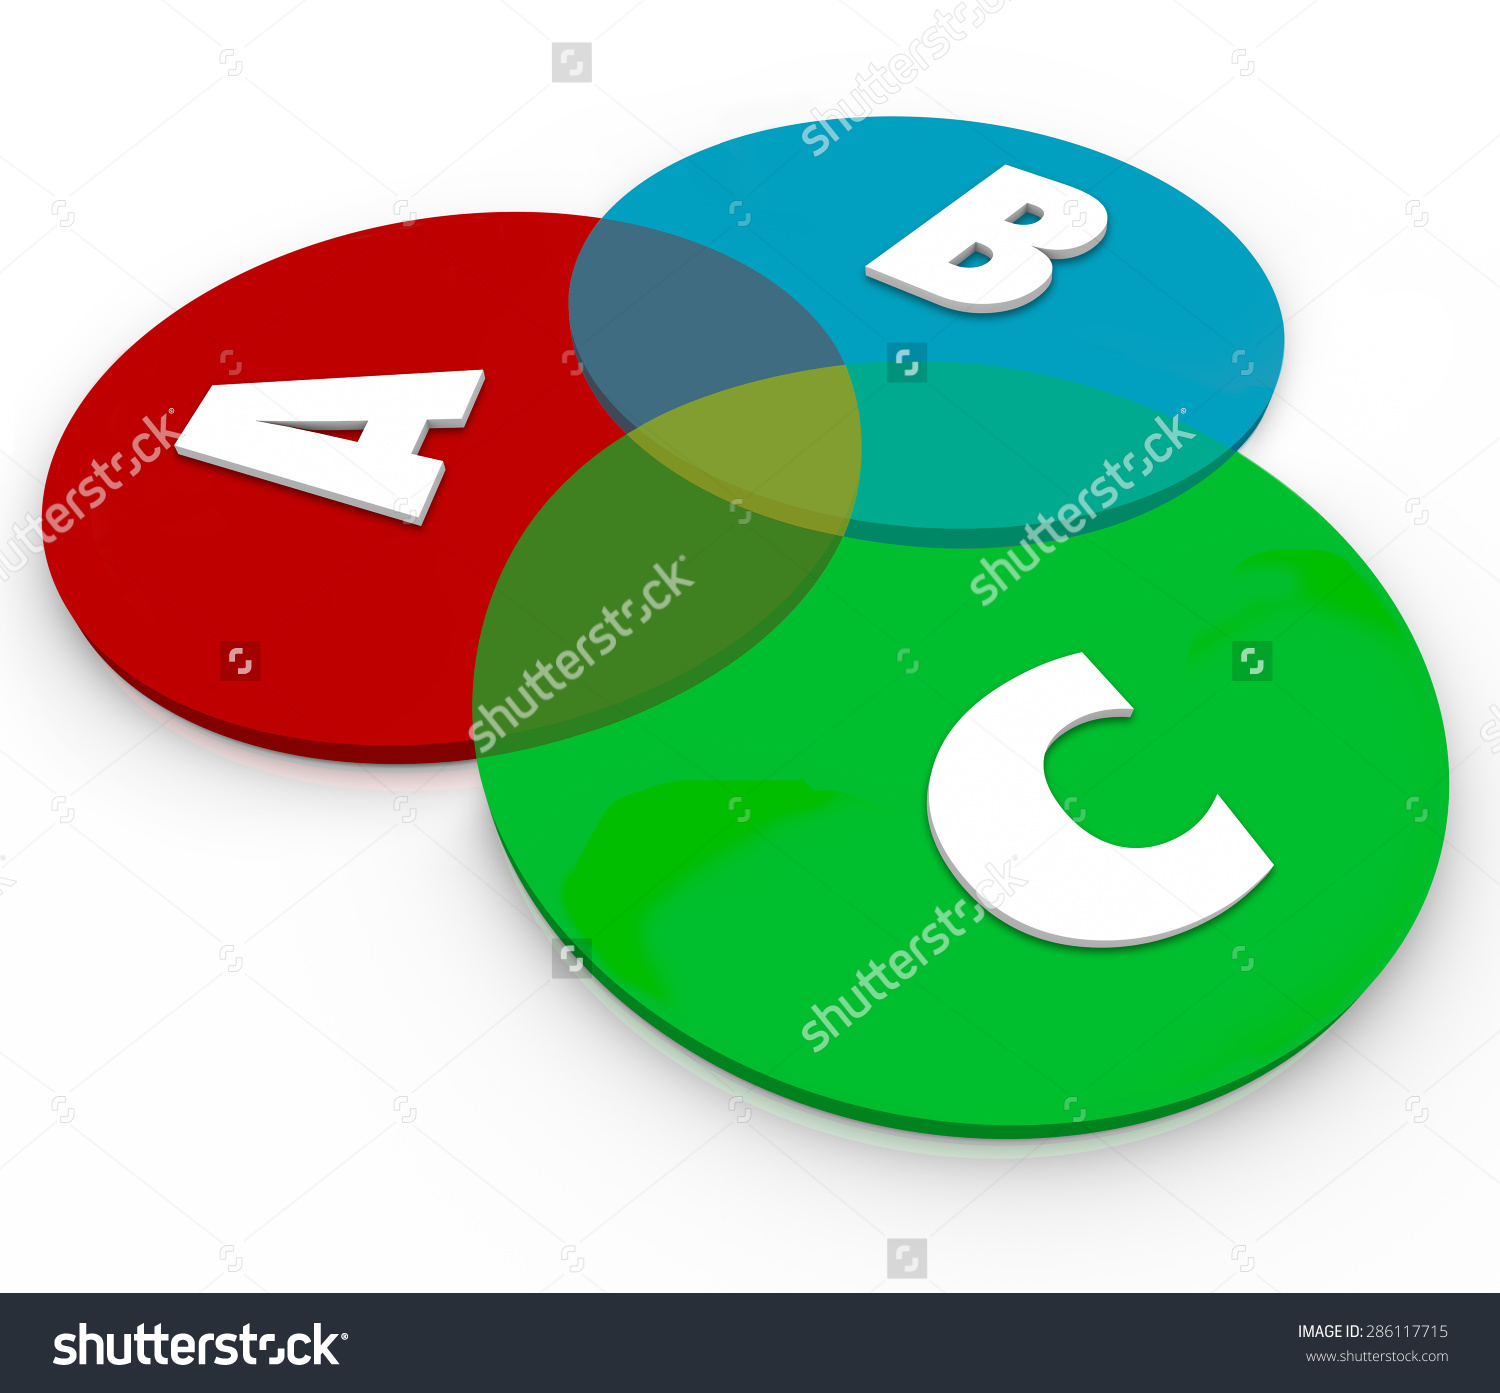 Abc analysis clipart graphic royalty free stock Abc Letters On Venn Diagram Overlapping Stock Illustration ... graphic royalty free stock